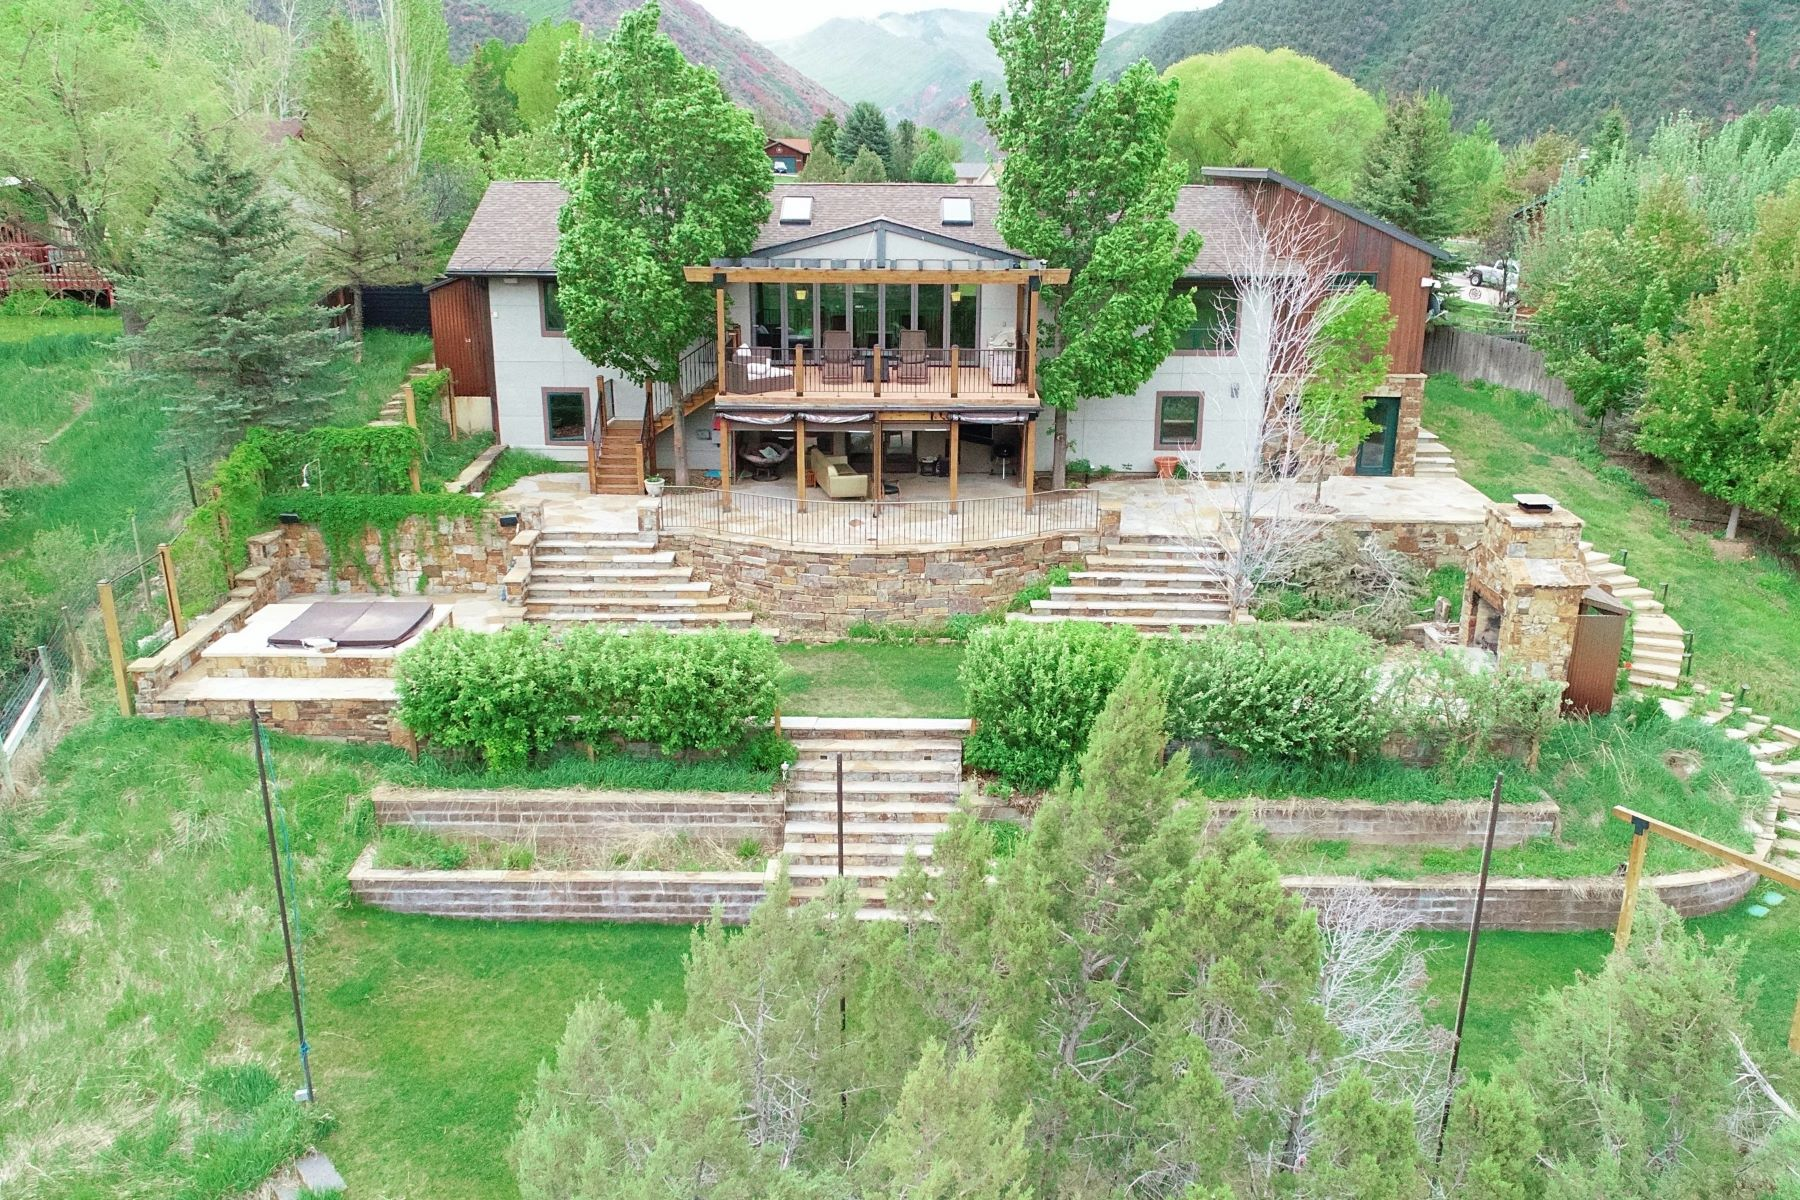 Single Family Homes for Sale at CANYON CREEK ESTATES, LOT 14 563 Canyon Creek Drive Glenwood Springs, Colorado 81601 United States